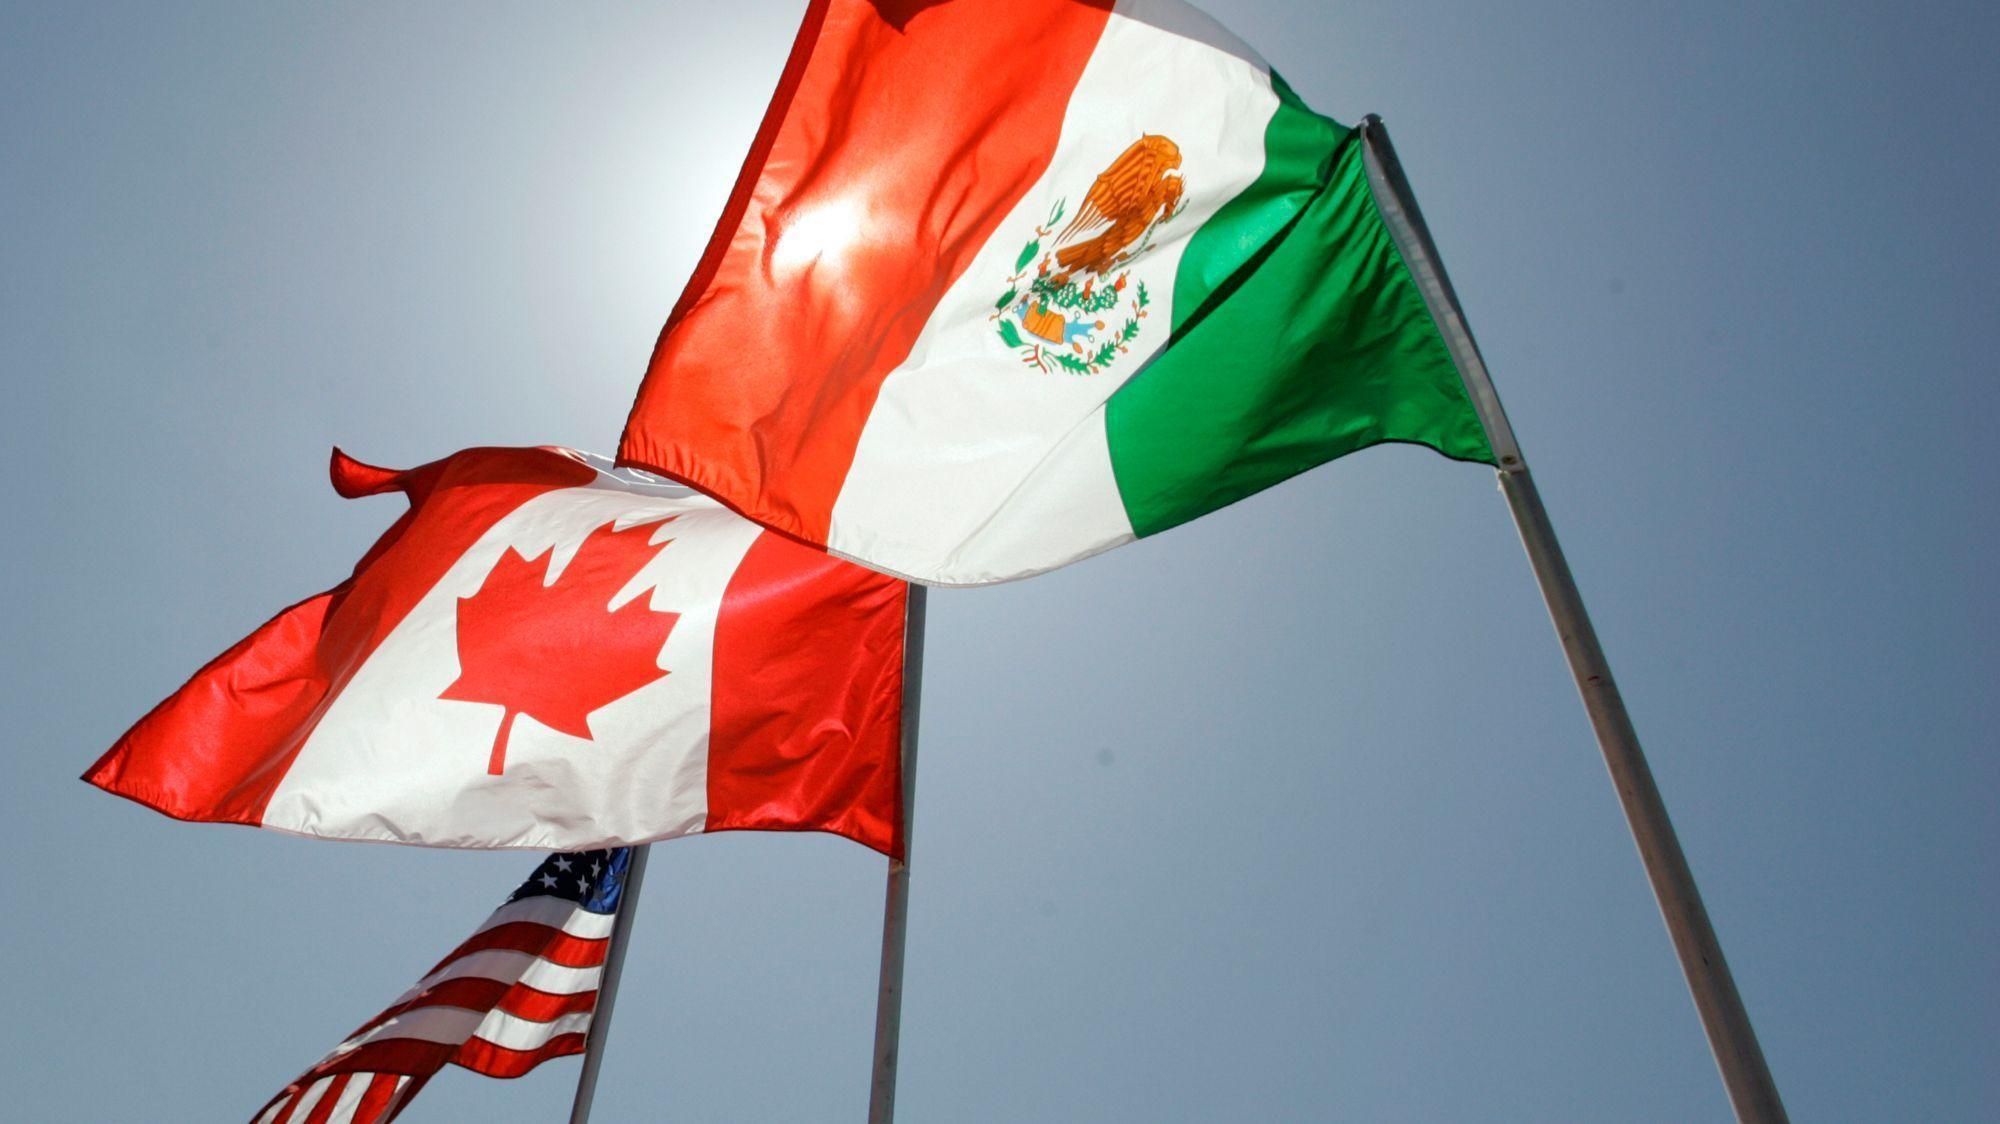 NAFTA talks bog down over US demands as latest round concludes